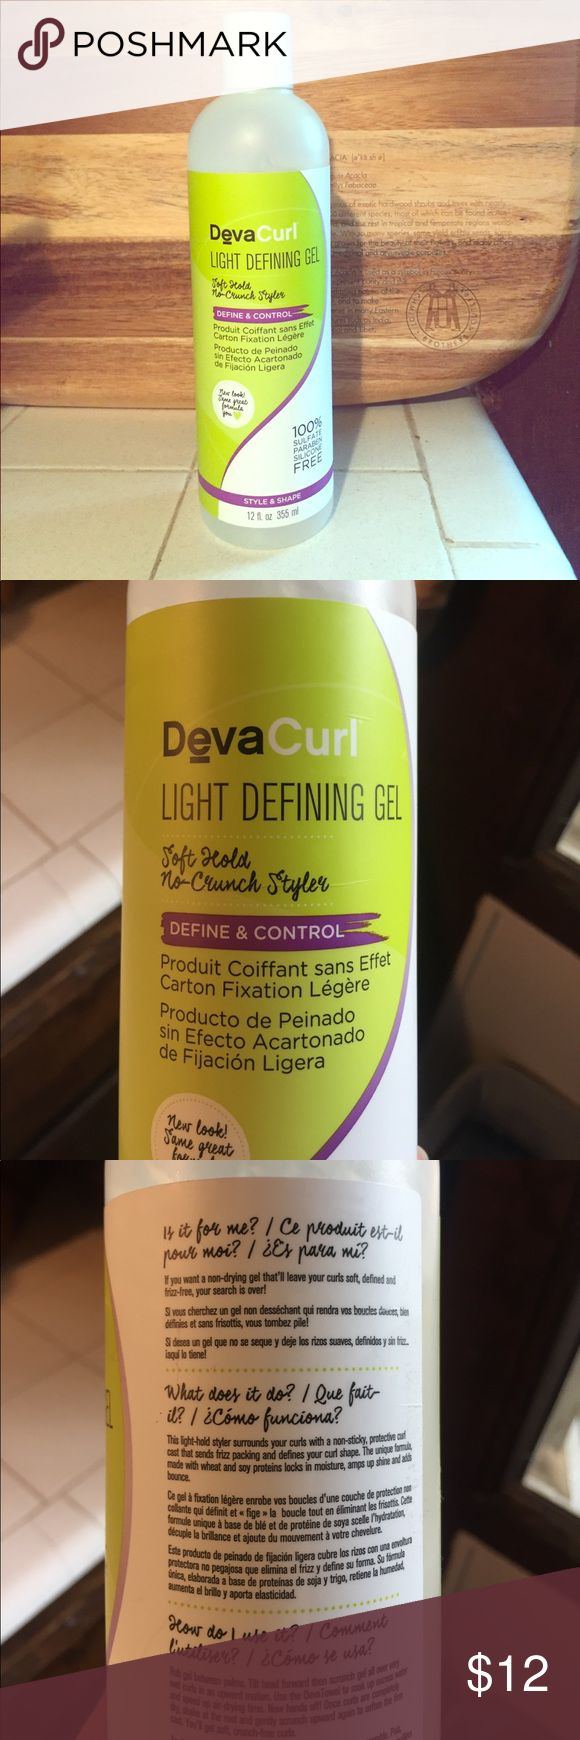 DevaCurl Light Defining Gel DevaCurl Light Defining Gel. Soft hold, no-crunch styler. I'm a proud curly girl and I love the DevaCurl brand but I currently have too many styling products and this is one that I don't use as often. It's a wonderful product to get defined curls without the crunchy look. There is a picture above of how much I used. devacurl Other